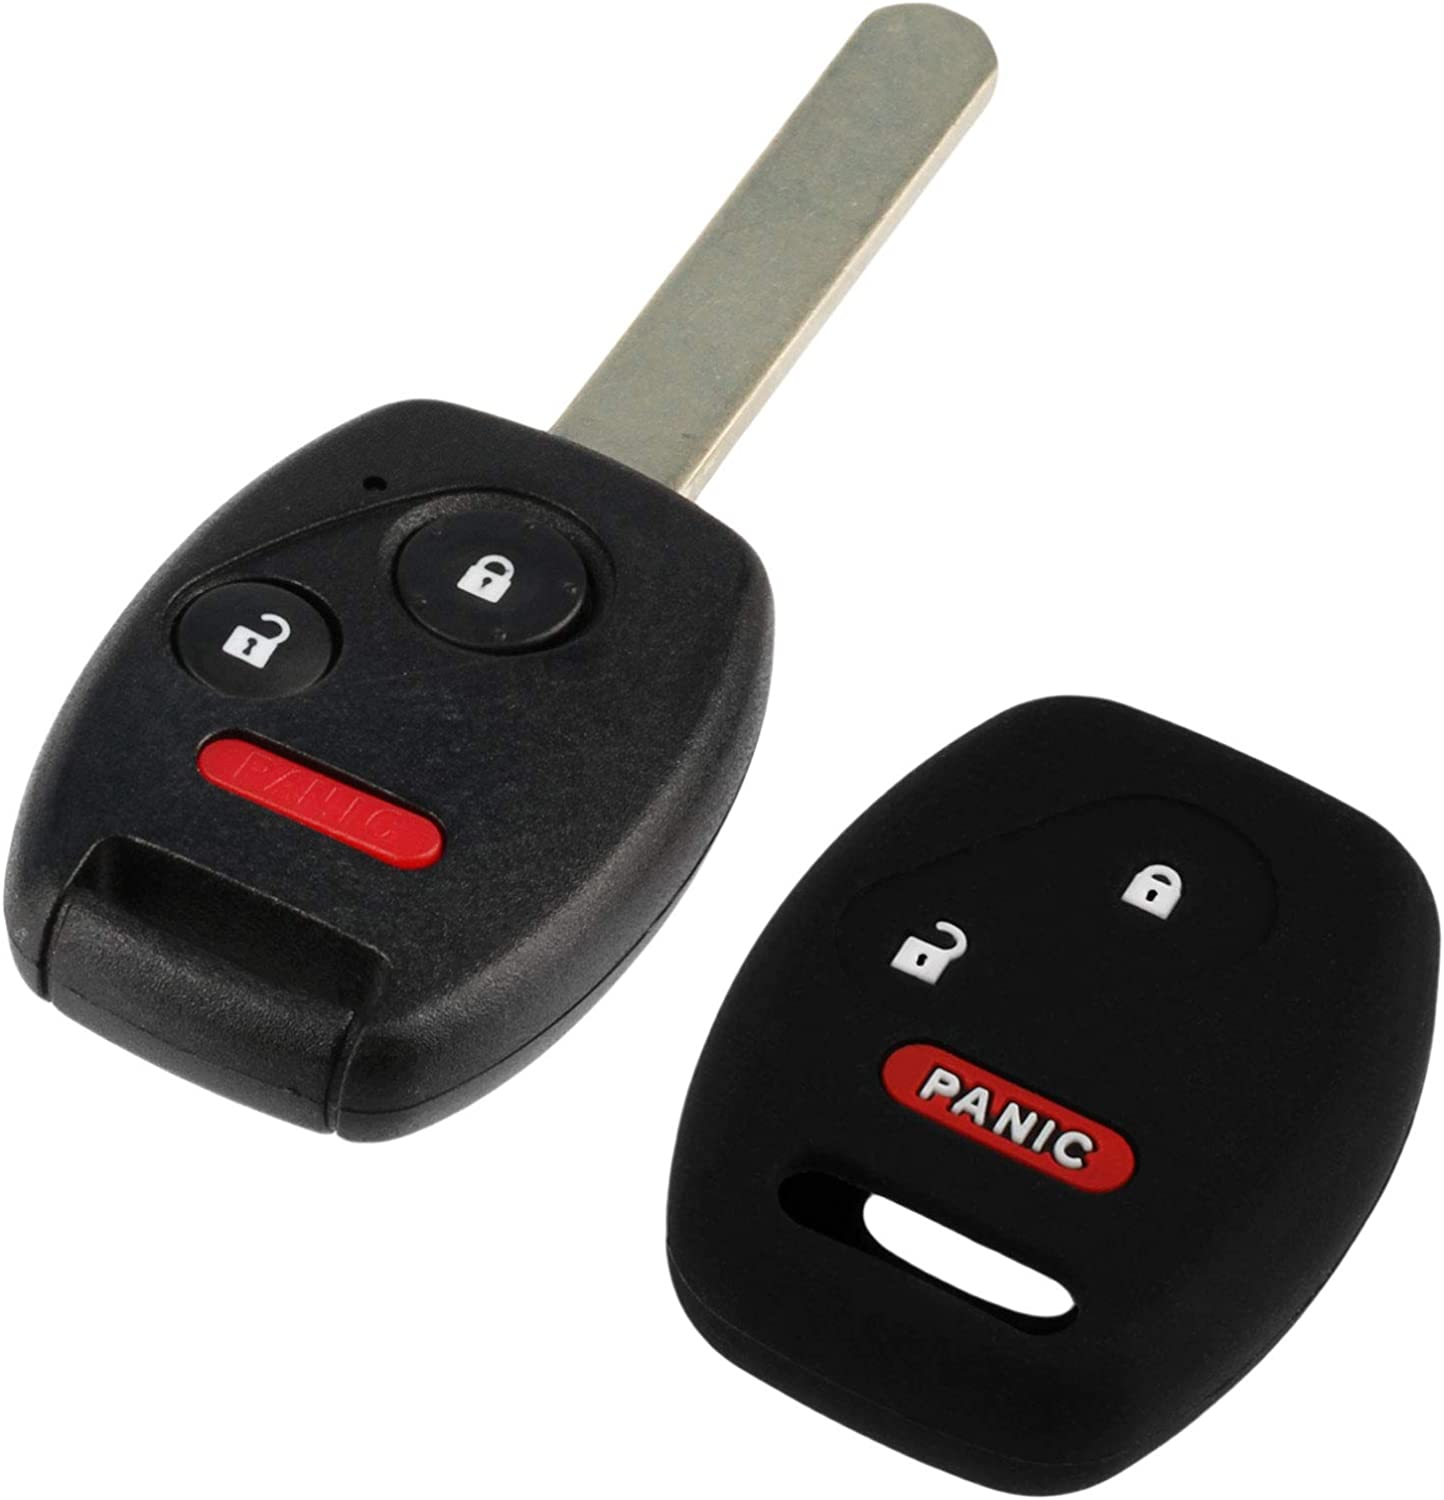 MLBHLIK-1T Protective Cover Key Fob Keyless Remote fits 2007-2015 Honda Vehicles